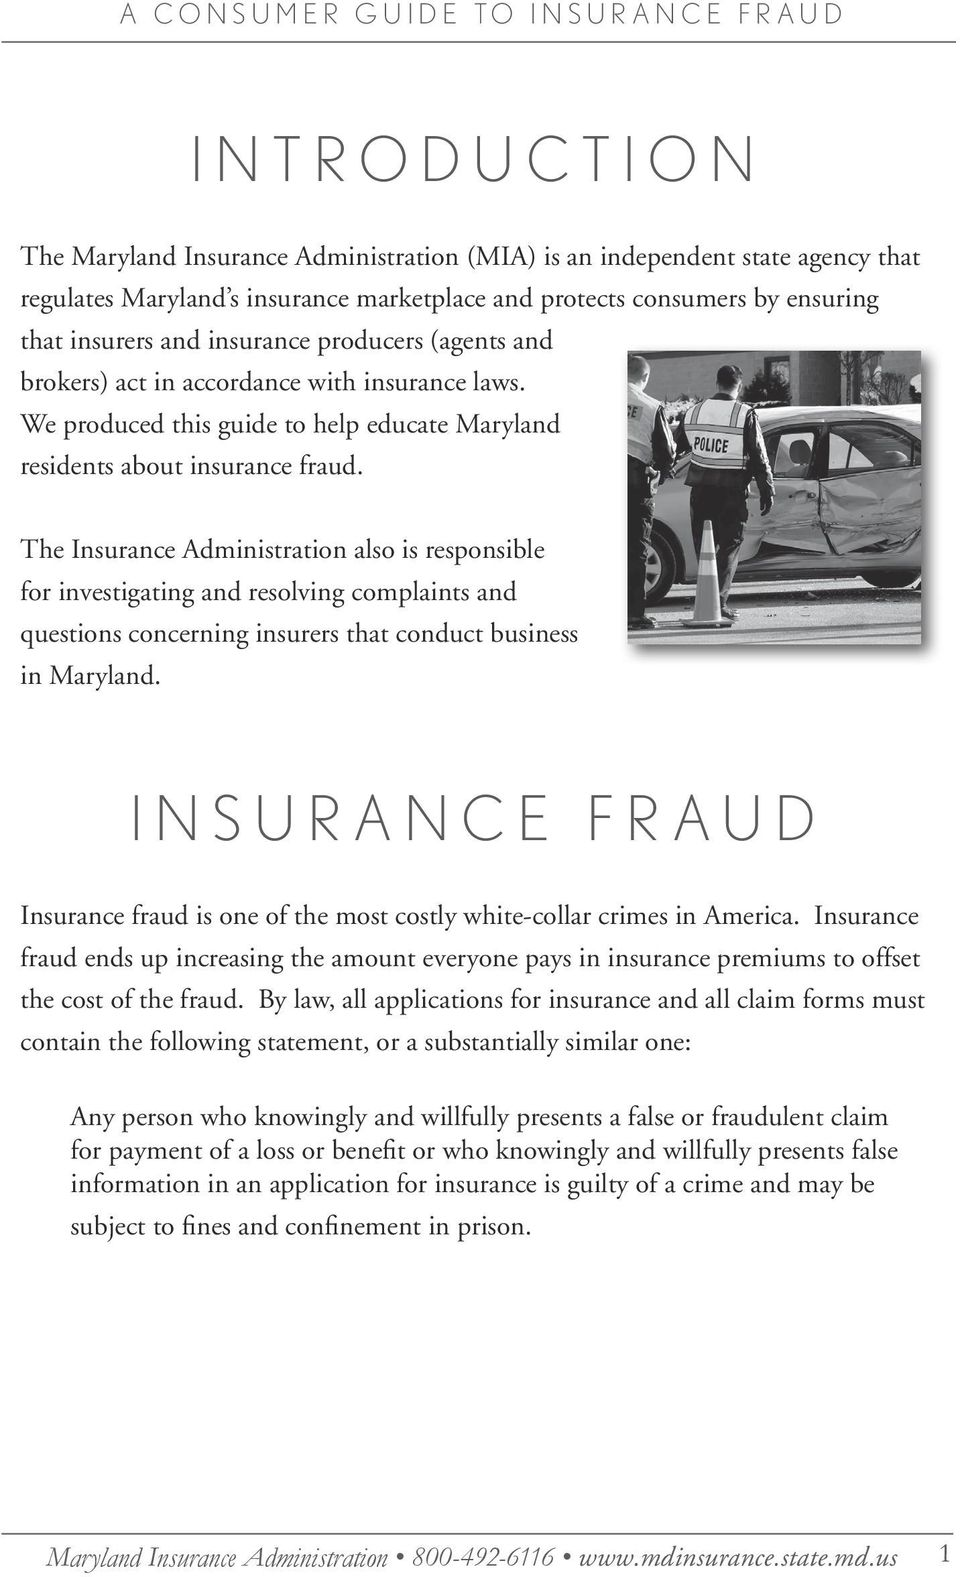 The Insurance Administration also is responsible for investigating and resolving complaints and questions concerning insurers that conduct business in Maryland.